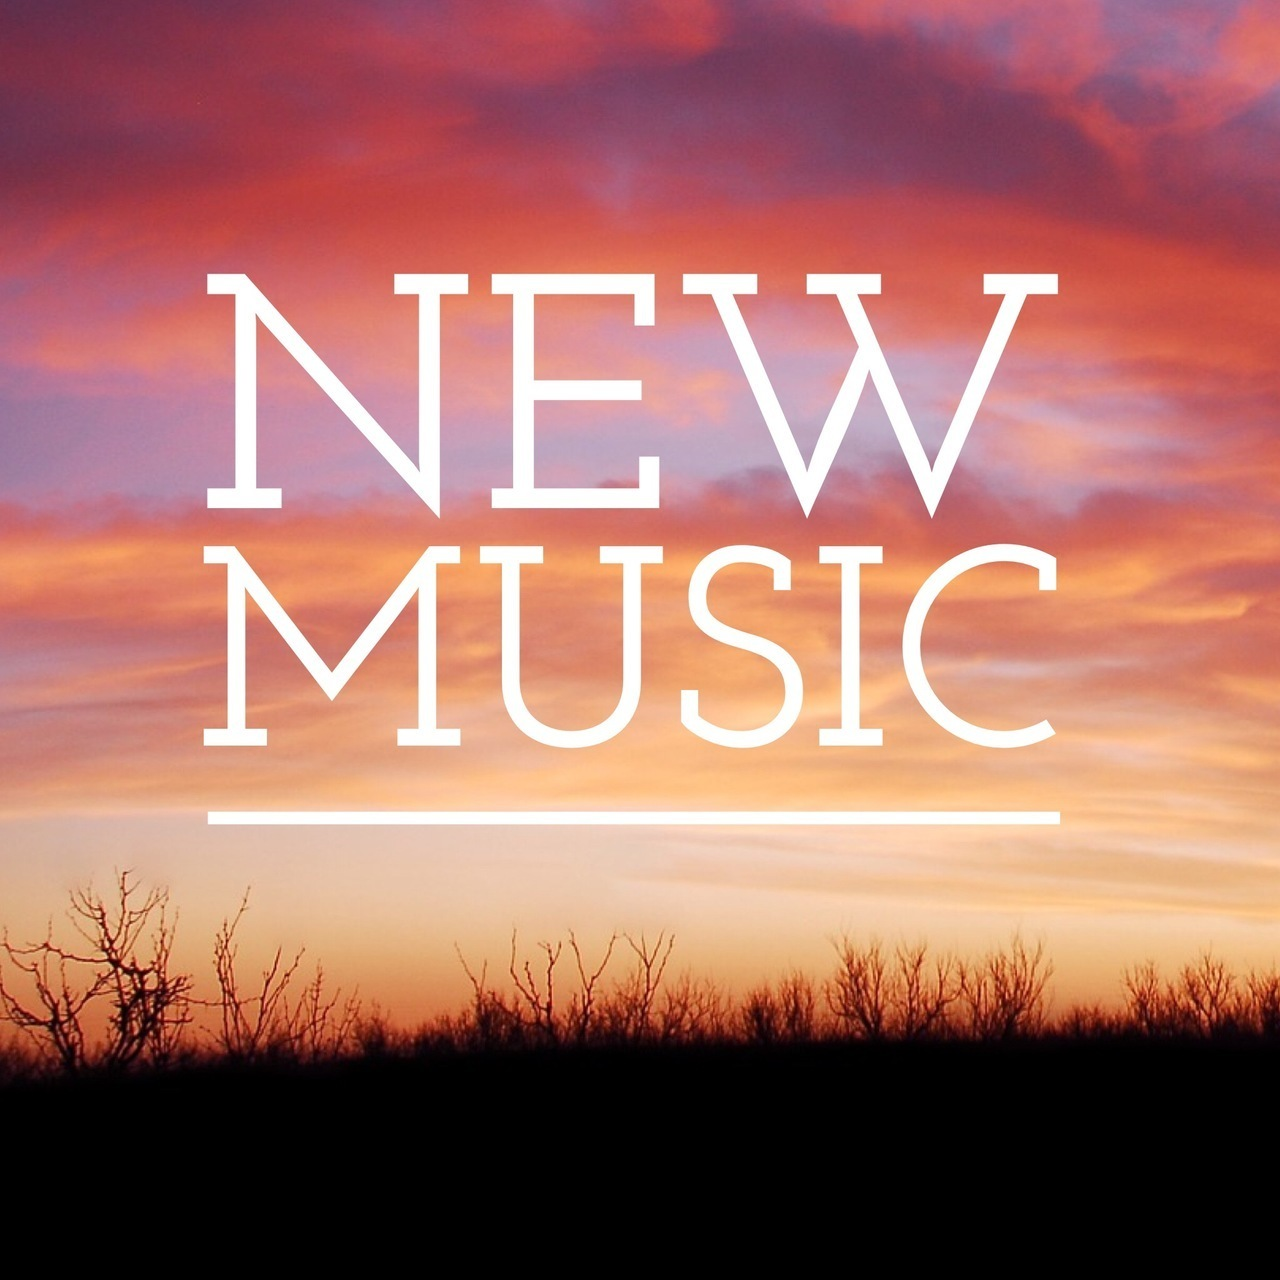 article, music, and new image